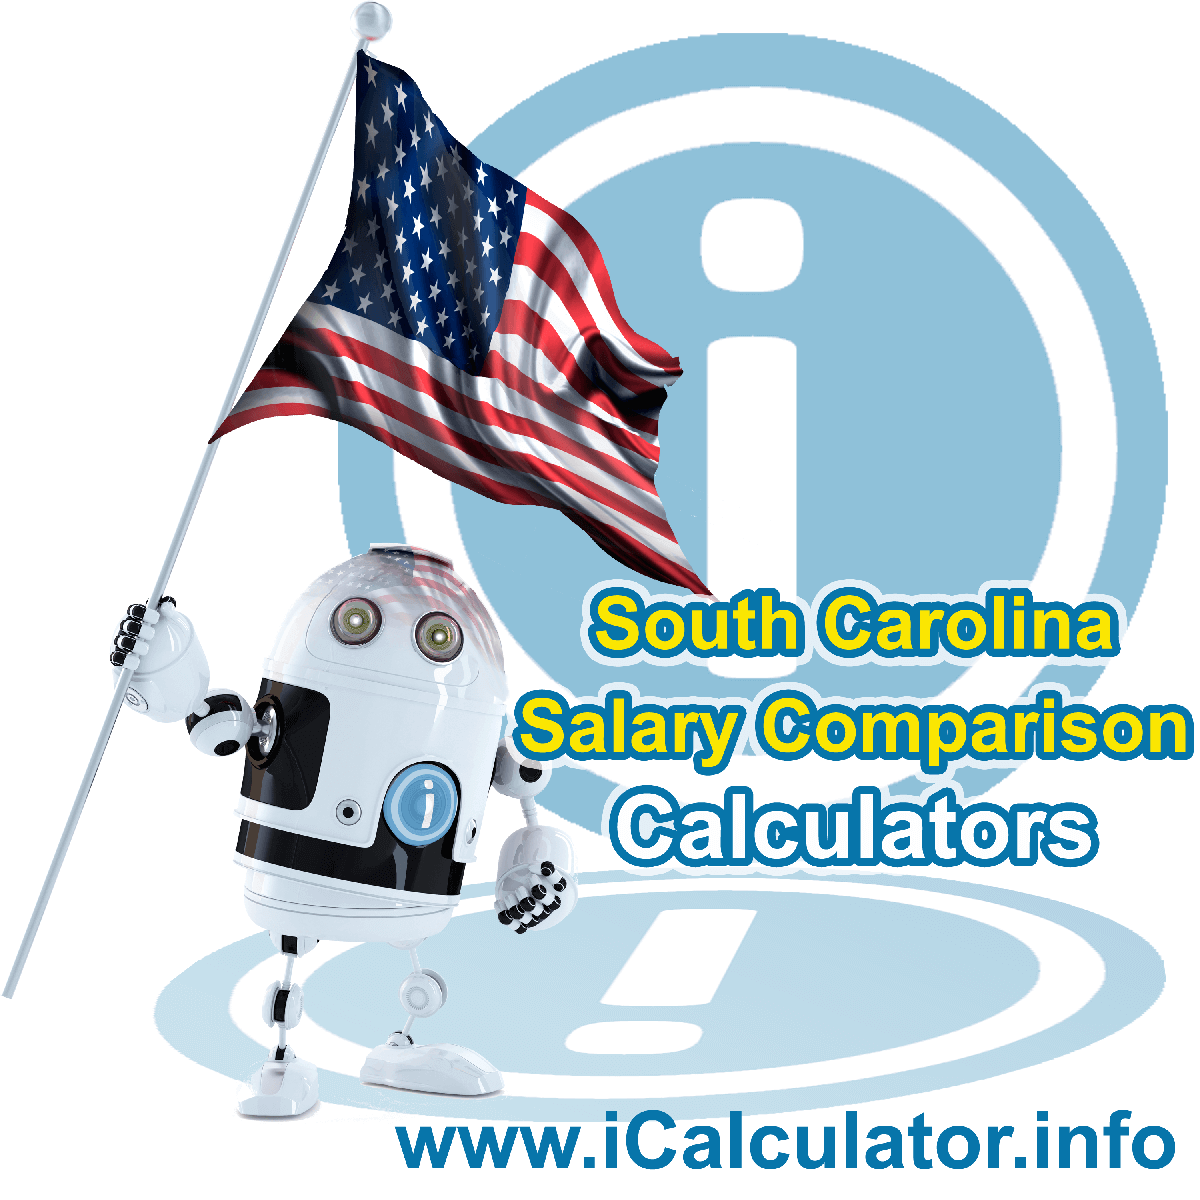 South Carolina Salary Comparison Calculator 2019 | iCalculator | The South Carolina Salary Comparison Calculator allows you to quickly calculate and compare upto 6 salaries in South Carolina or between other states for the 2019 tax year and historical tax years. Its an excellent tool for jobseekers, pay raise comparison and comparison of salaries between different US States